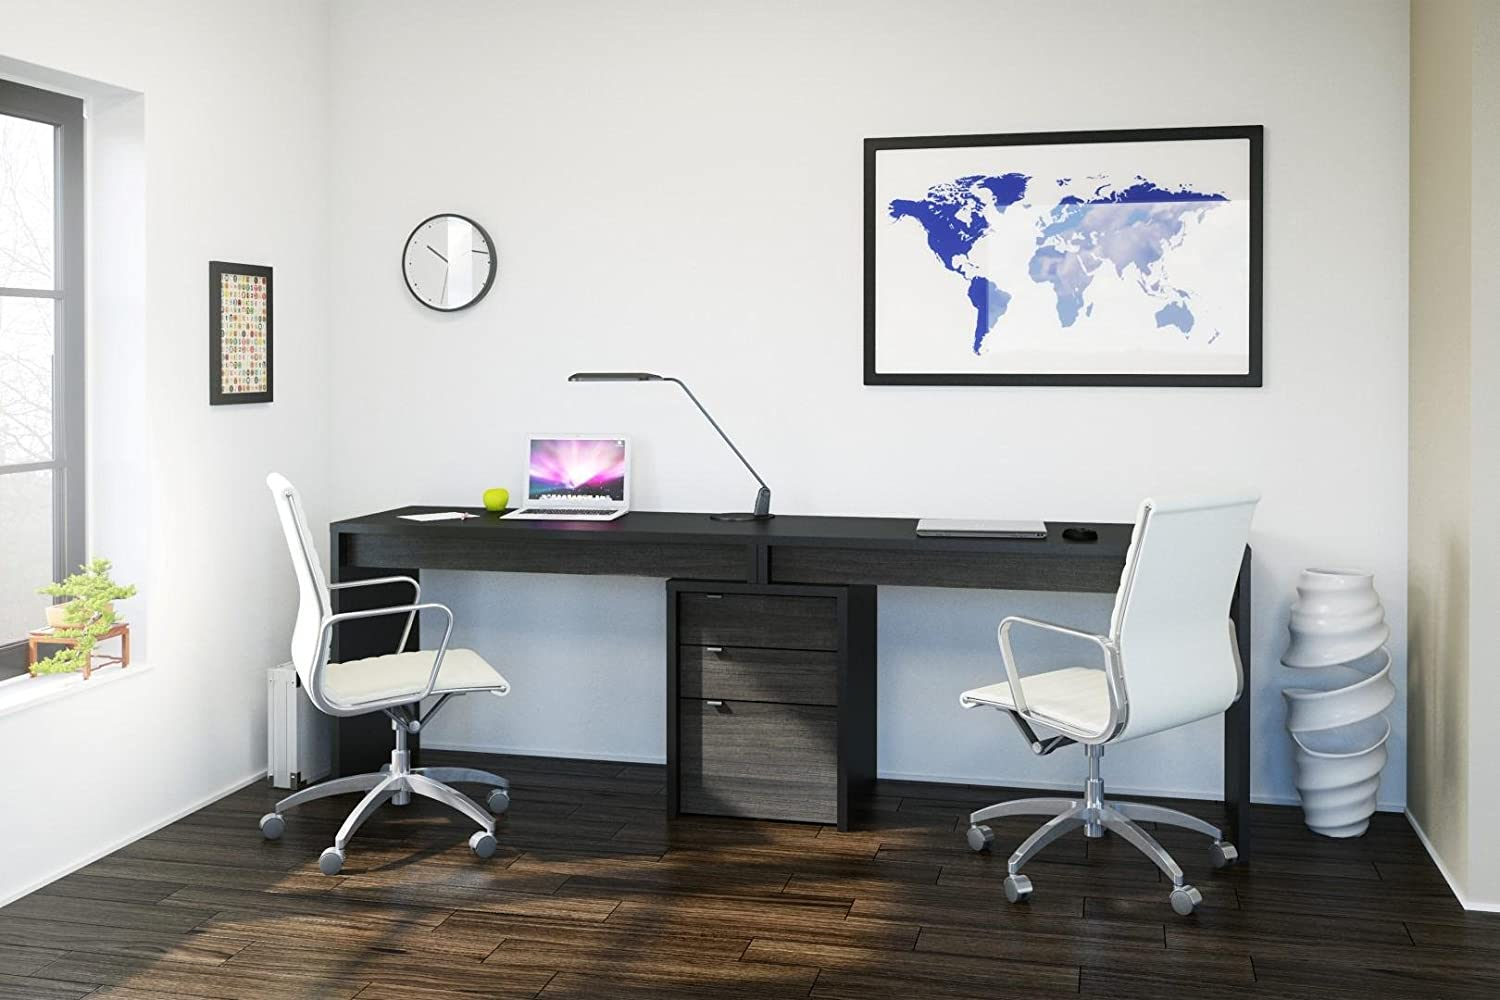 Amazon.com: Sereni-T Home Office Kit with Two Reversible Desk Panels:  Kitchen & Dining